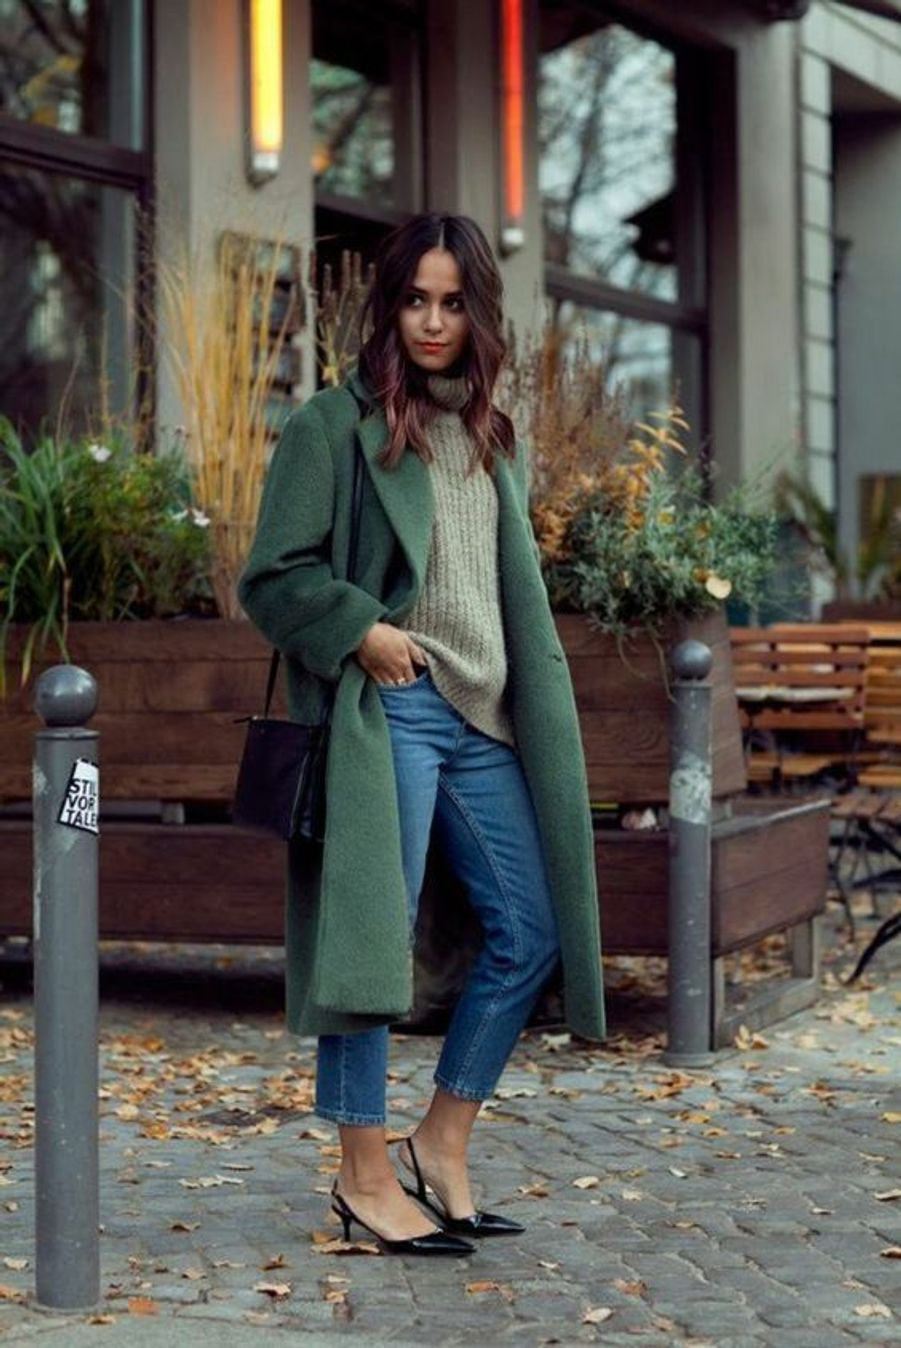 Manteau long verthttps://www.pinterest.fr/pin/509891989046279474/